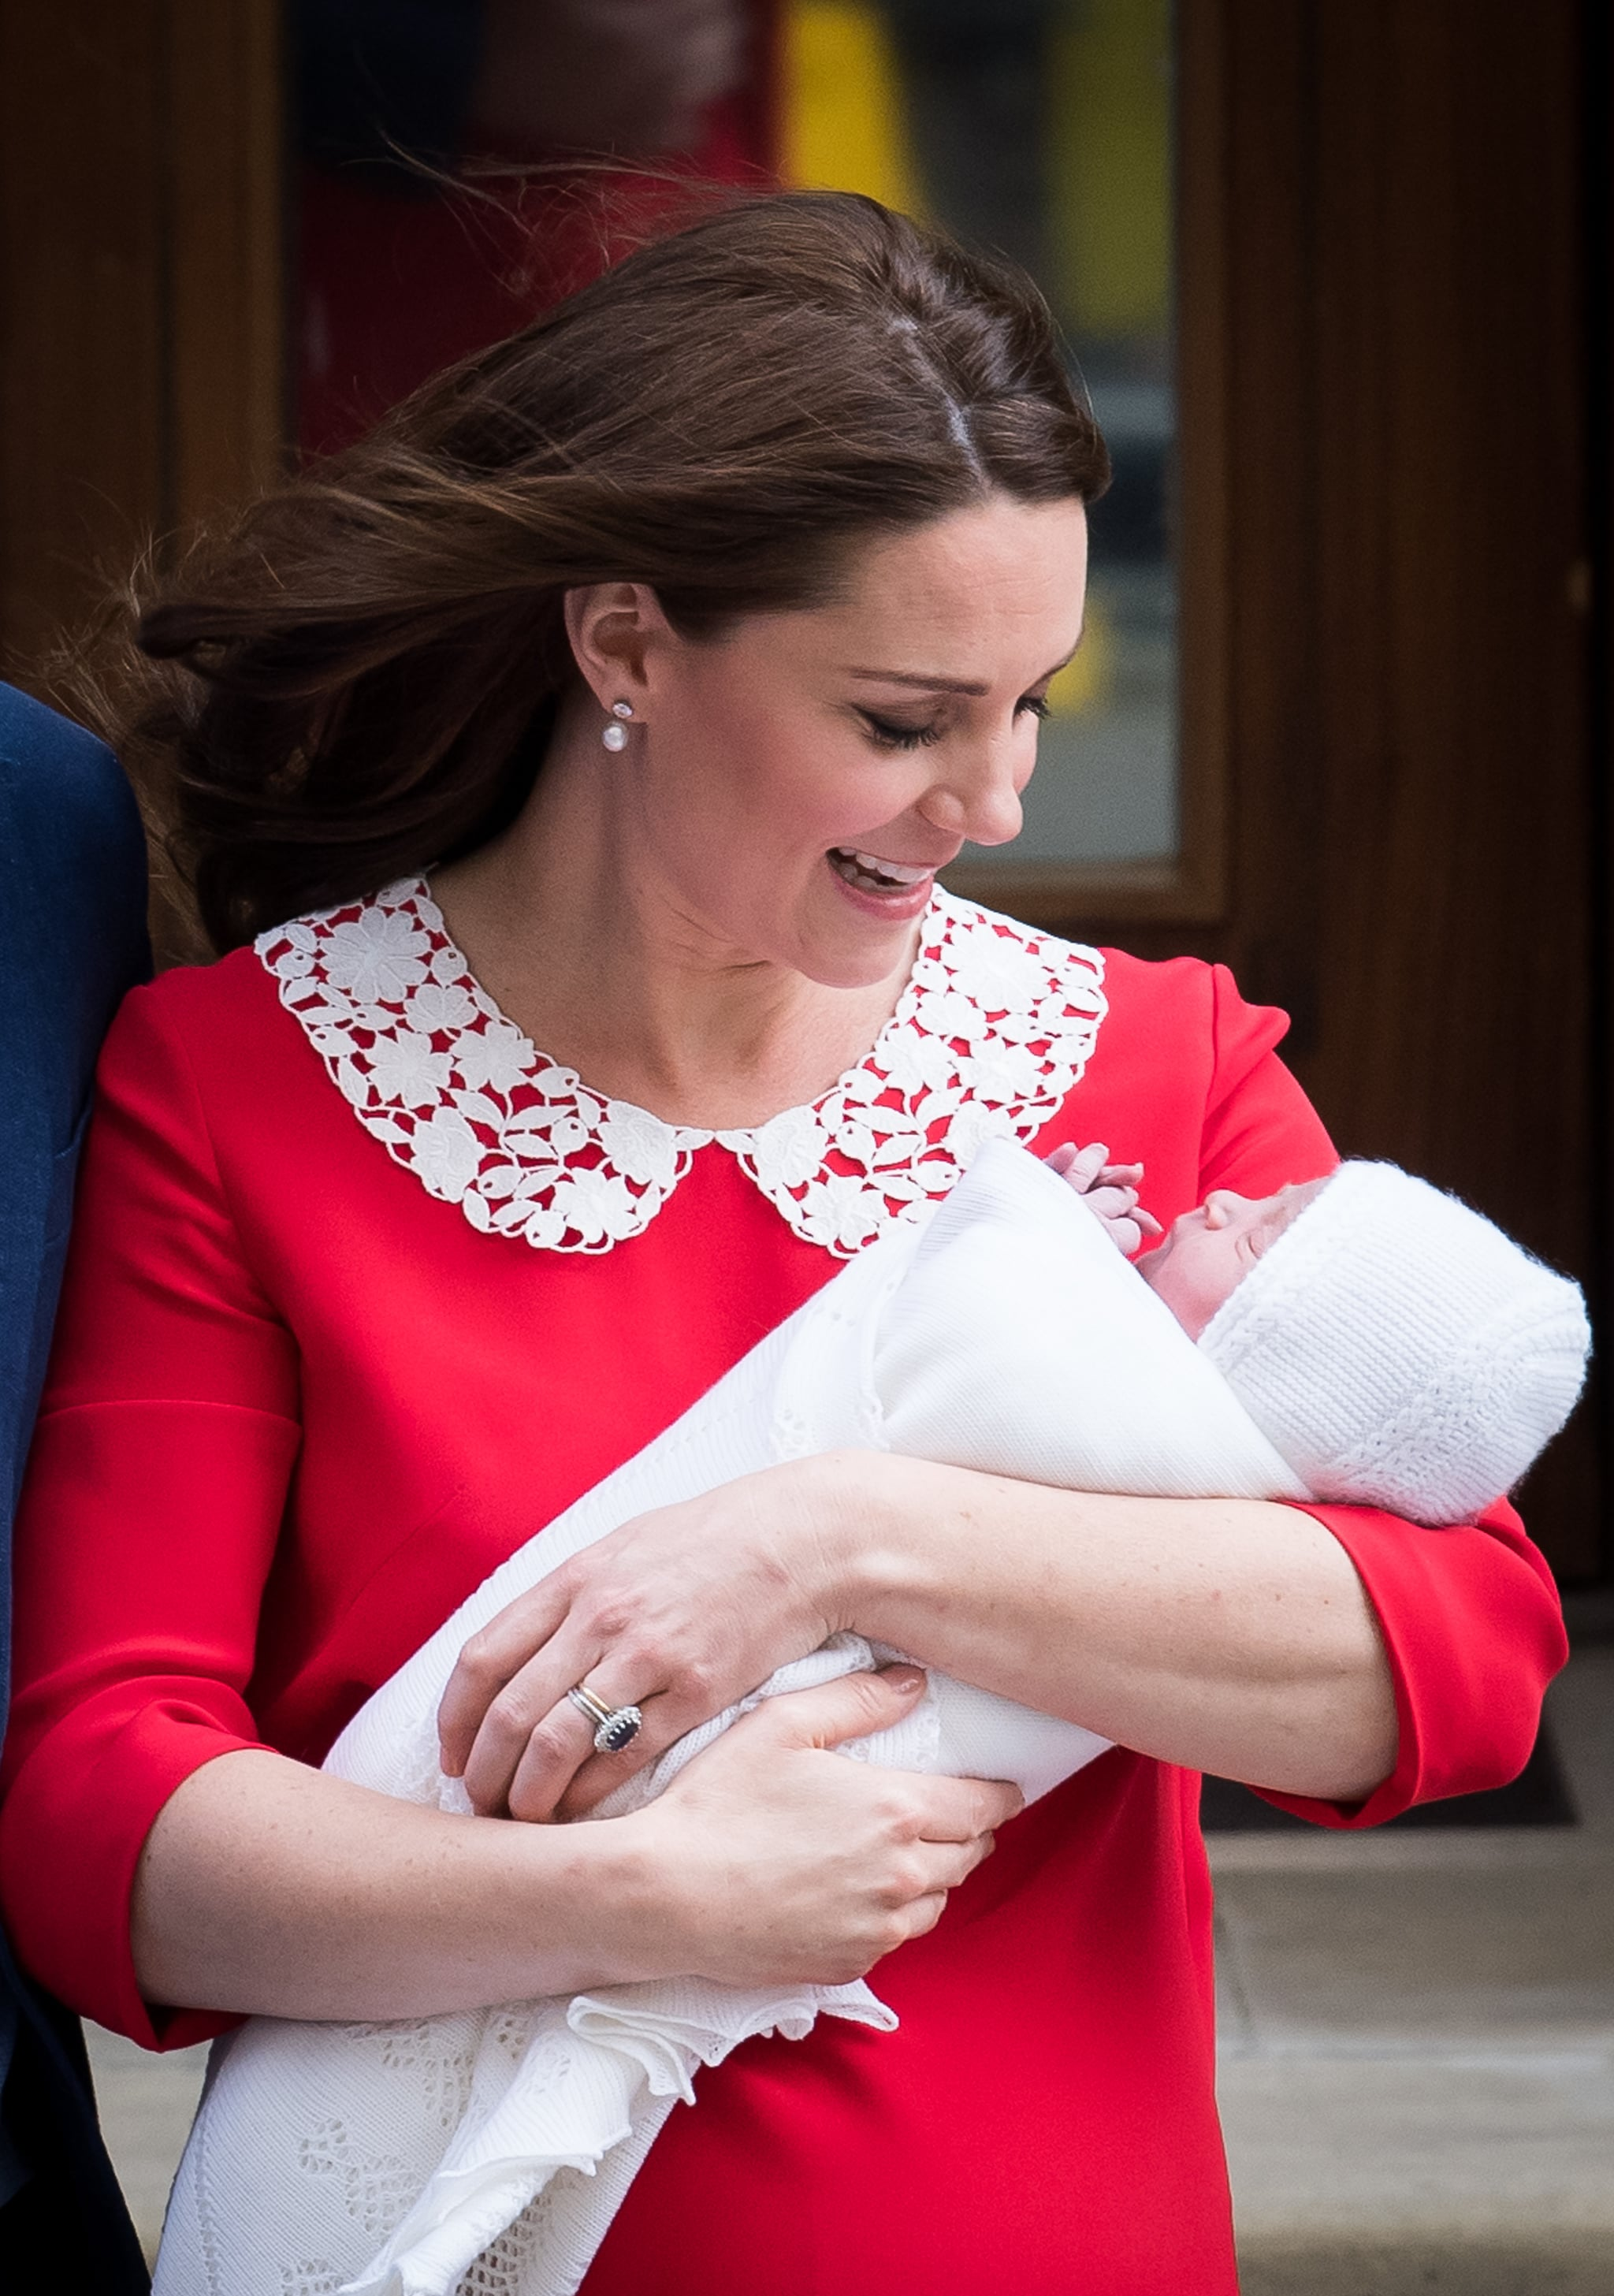 LONDON, ENGLAND - APRIL 23:  Catherine, Duchess of Cambridge departs the Lindo Wing with her newborn son at St Mary's Hospital on April 23, 2018 in London, England. The Duchess safely delivered a son at 11:01 am, weighing 8lbs 7oz, who will be fifth in line to the throne.  (Photo by Samir Hussein/WireImage)